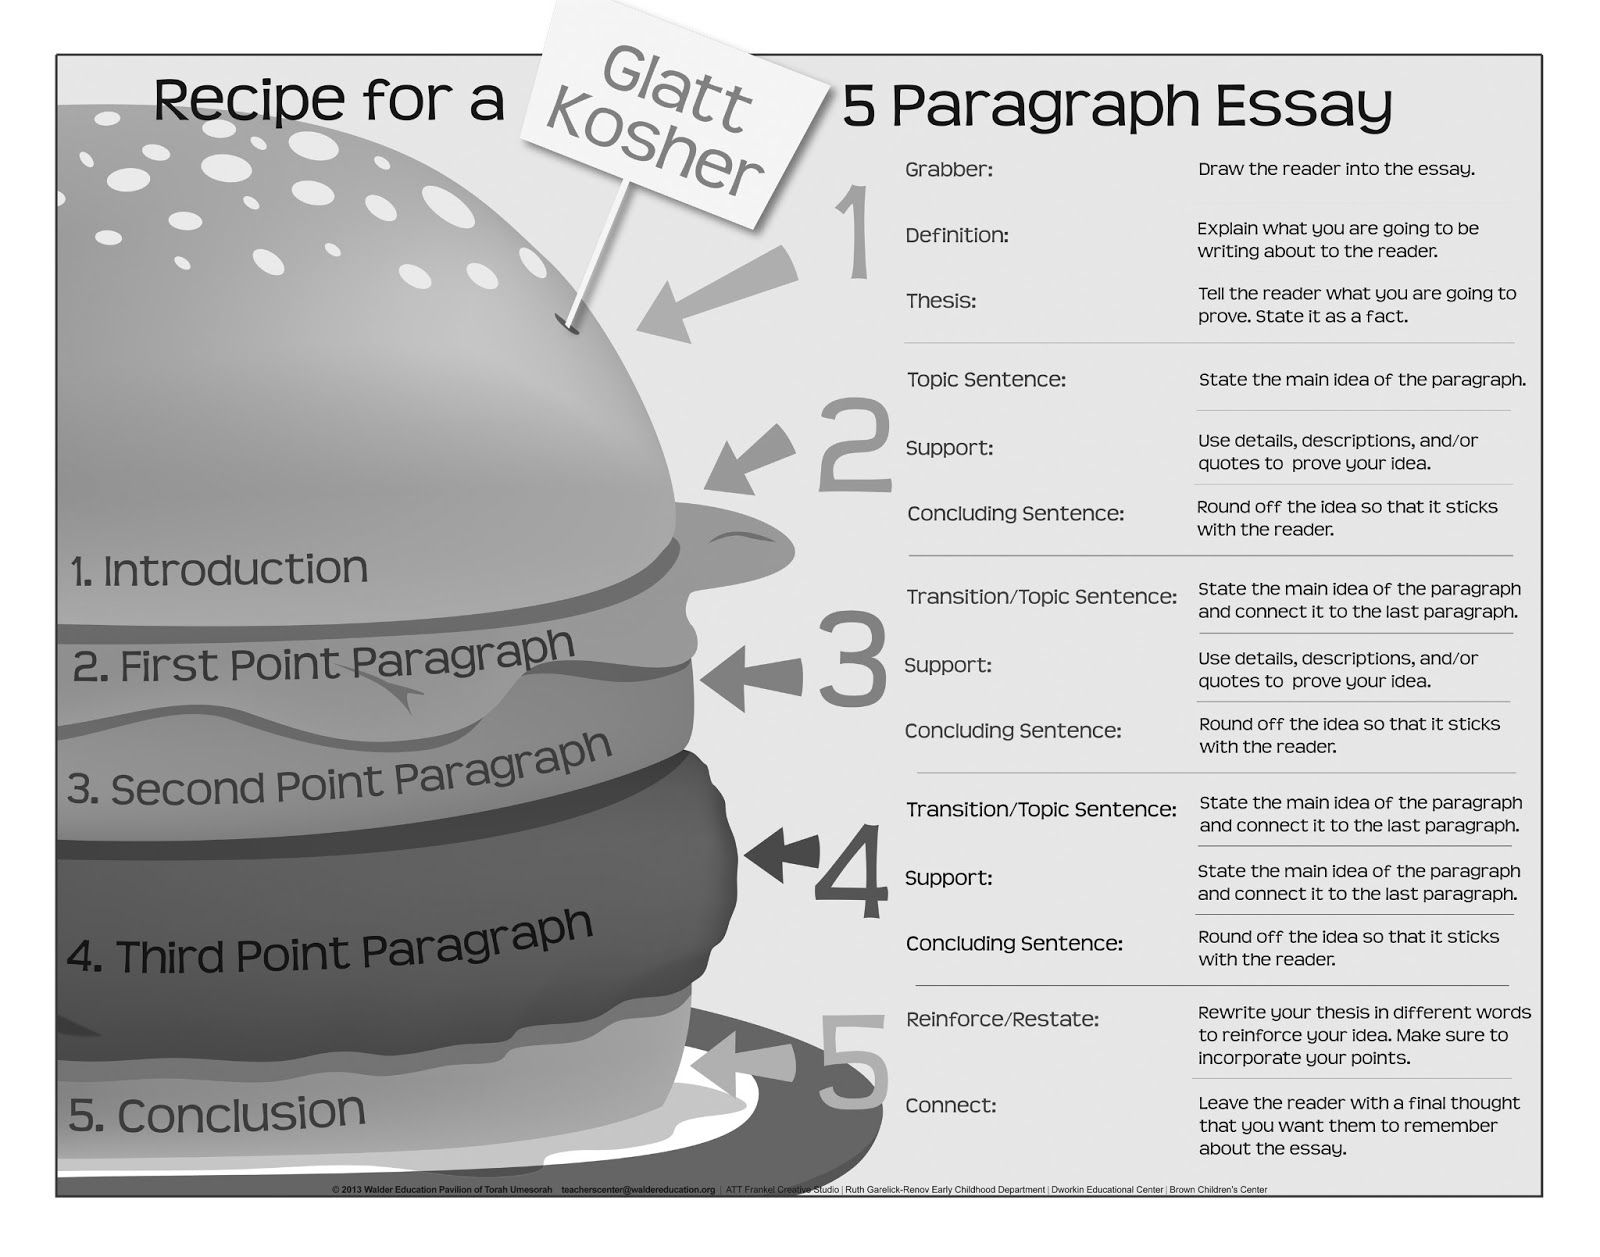 five paragraph essay ideas the process of writing five paragraph essays is not as easy as - Format Of A 5 Paragraph Essay